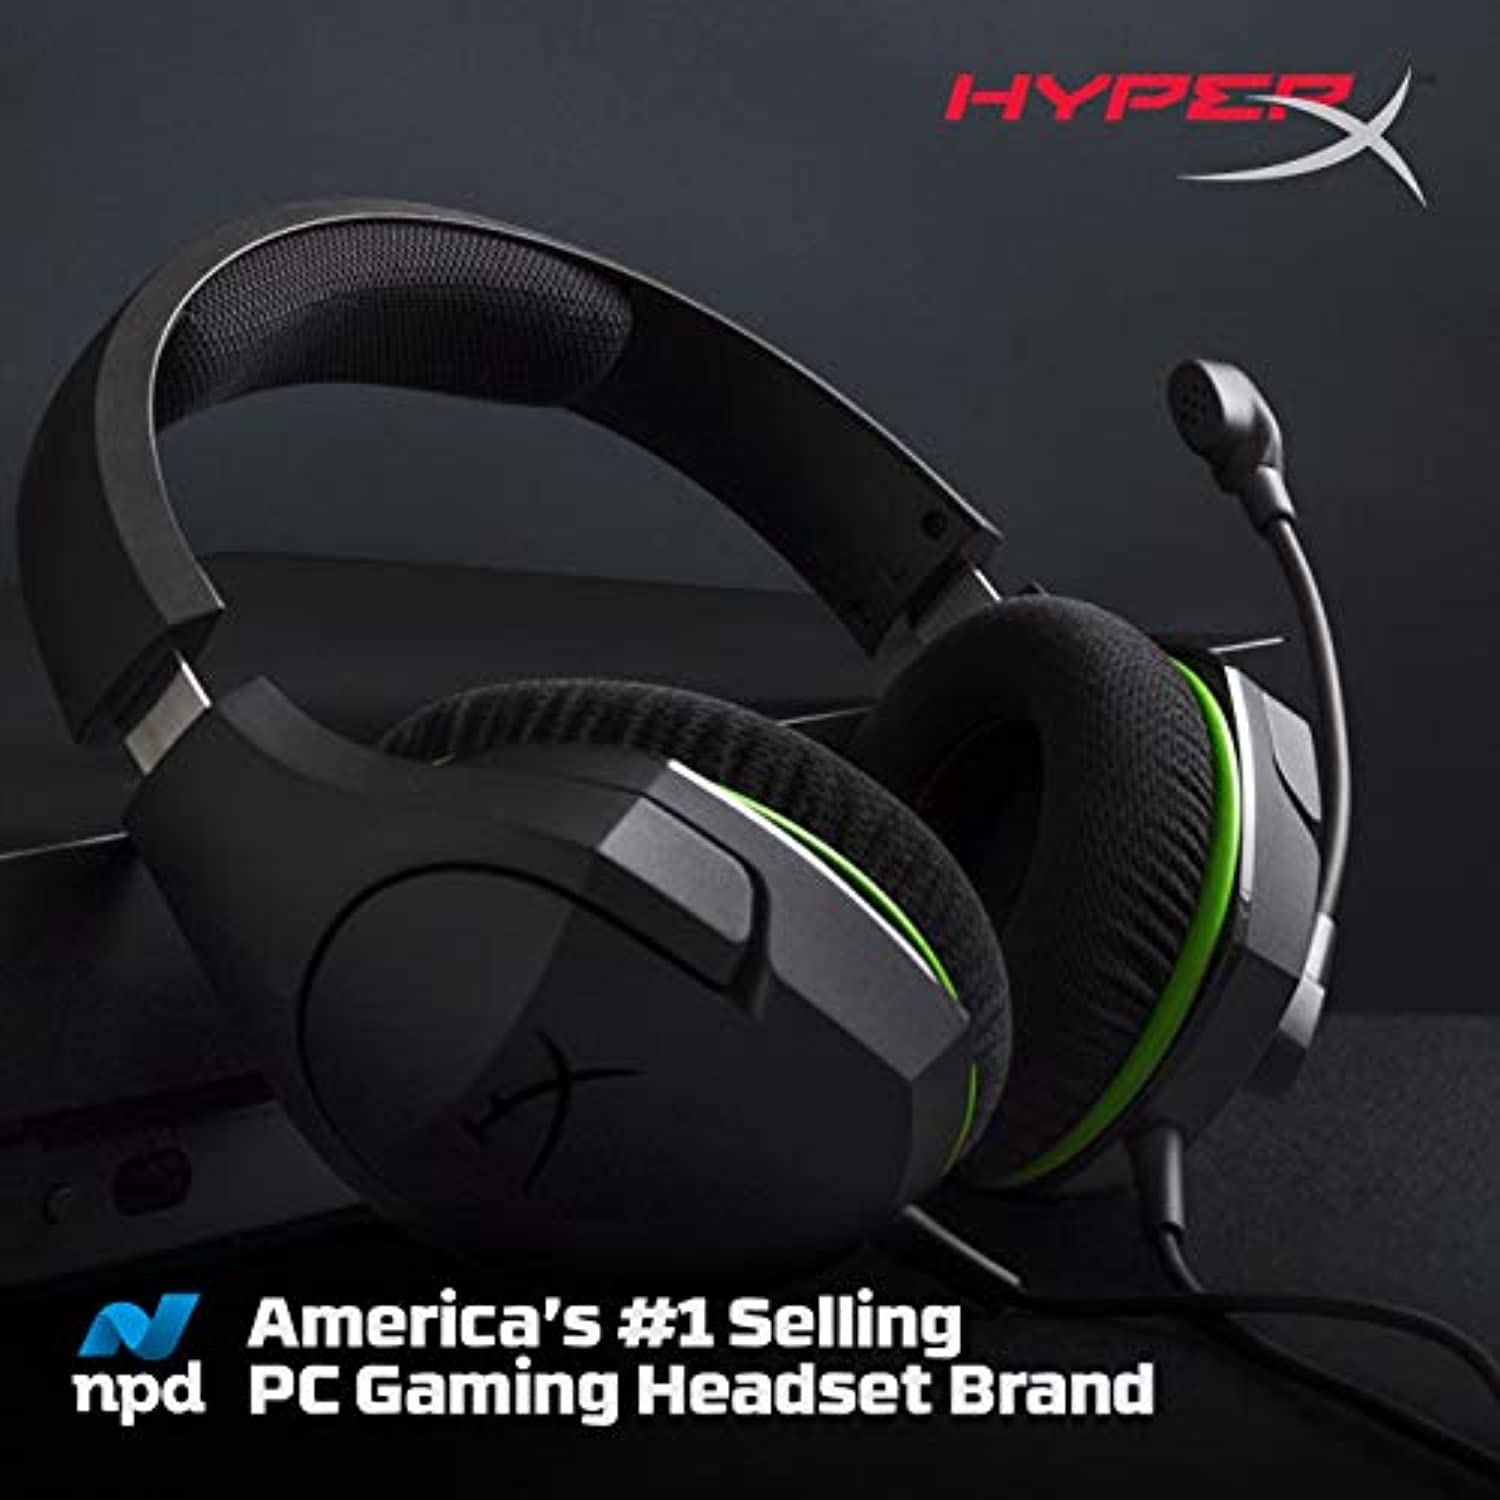 Classier: Buy HyperX HyperX CloudX Stinger Core - Official Licensed for Xbox, Gaming Headset with In-Line Audio Control, Immersive In-Game Audio, Microphone